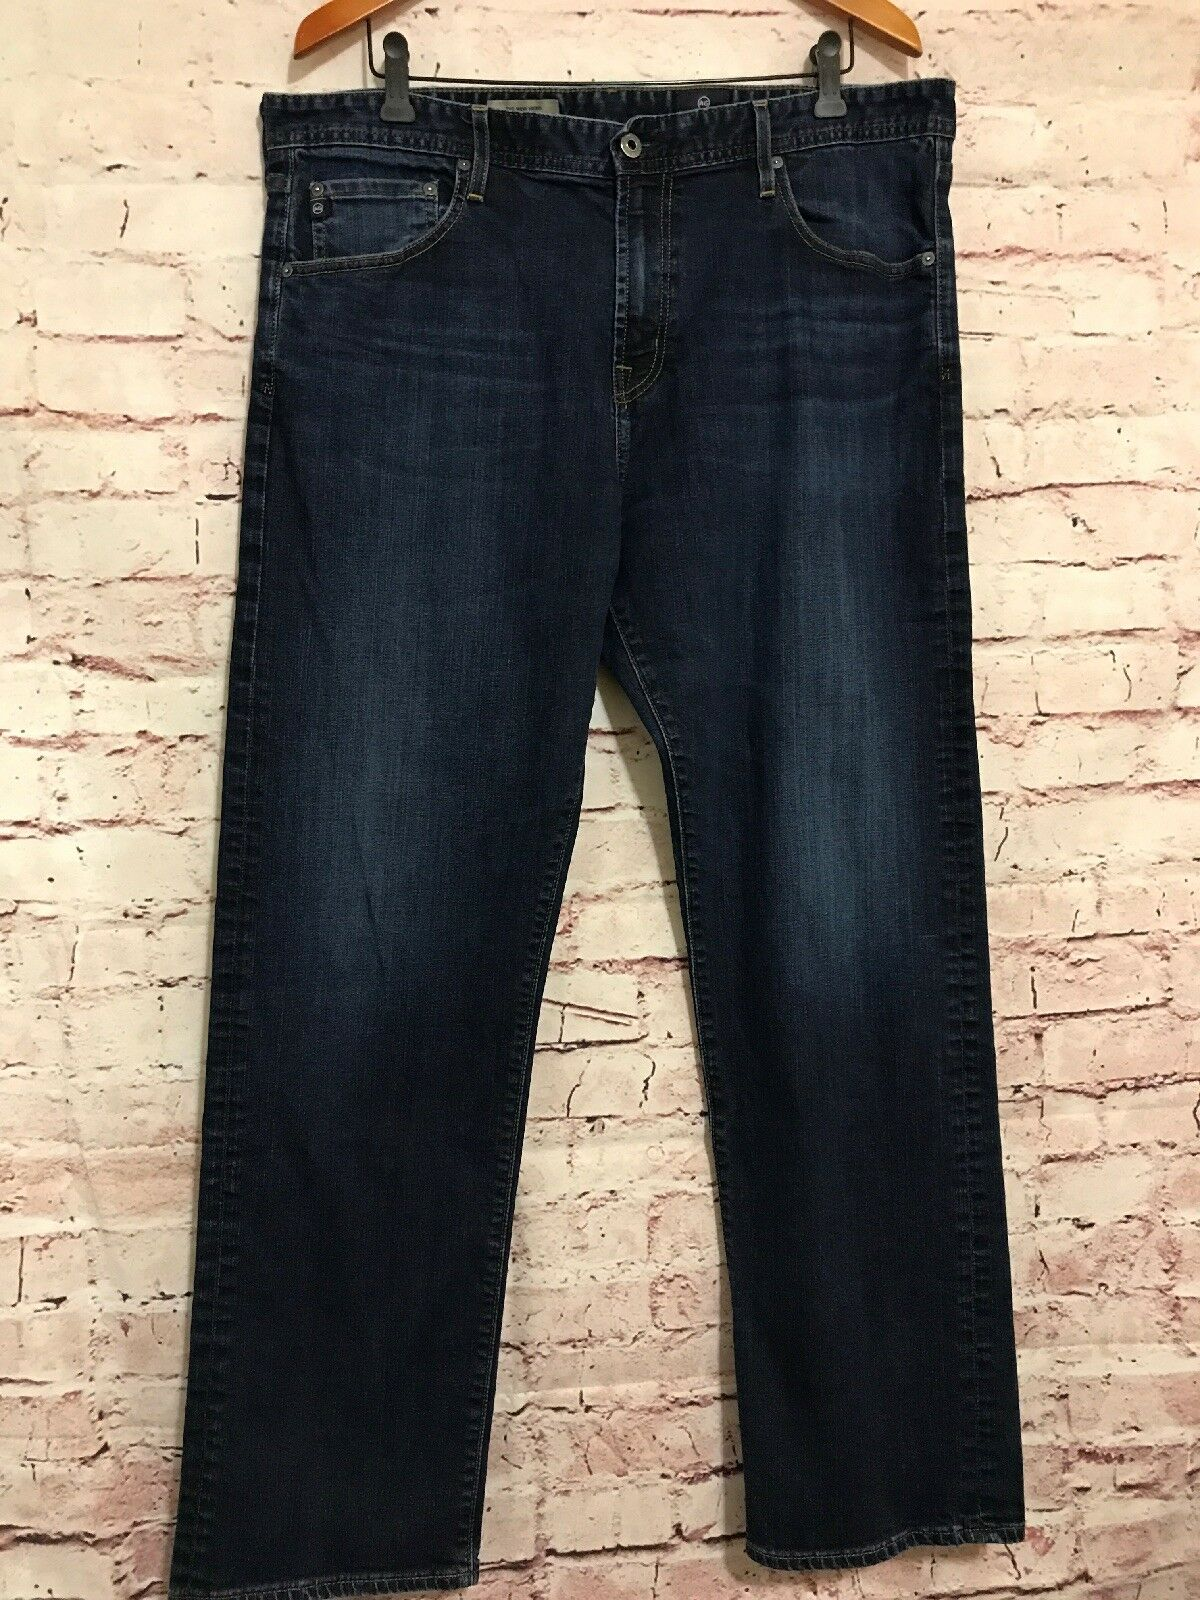 Ag Mens Jeans Dark Wash bluee The New Hero Relaxed Fit 38x31 C54